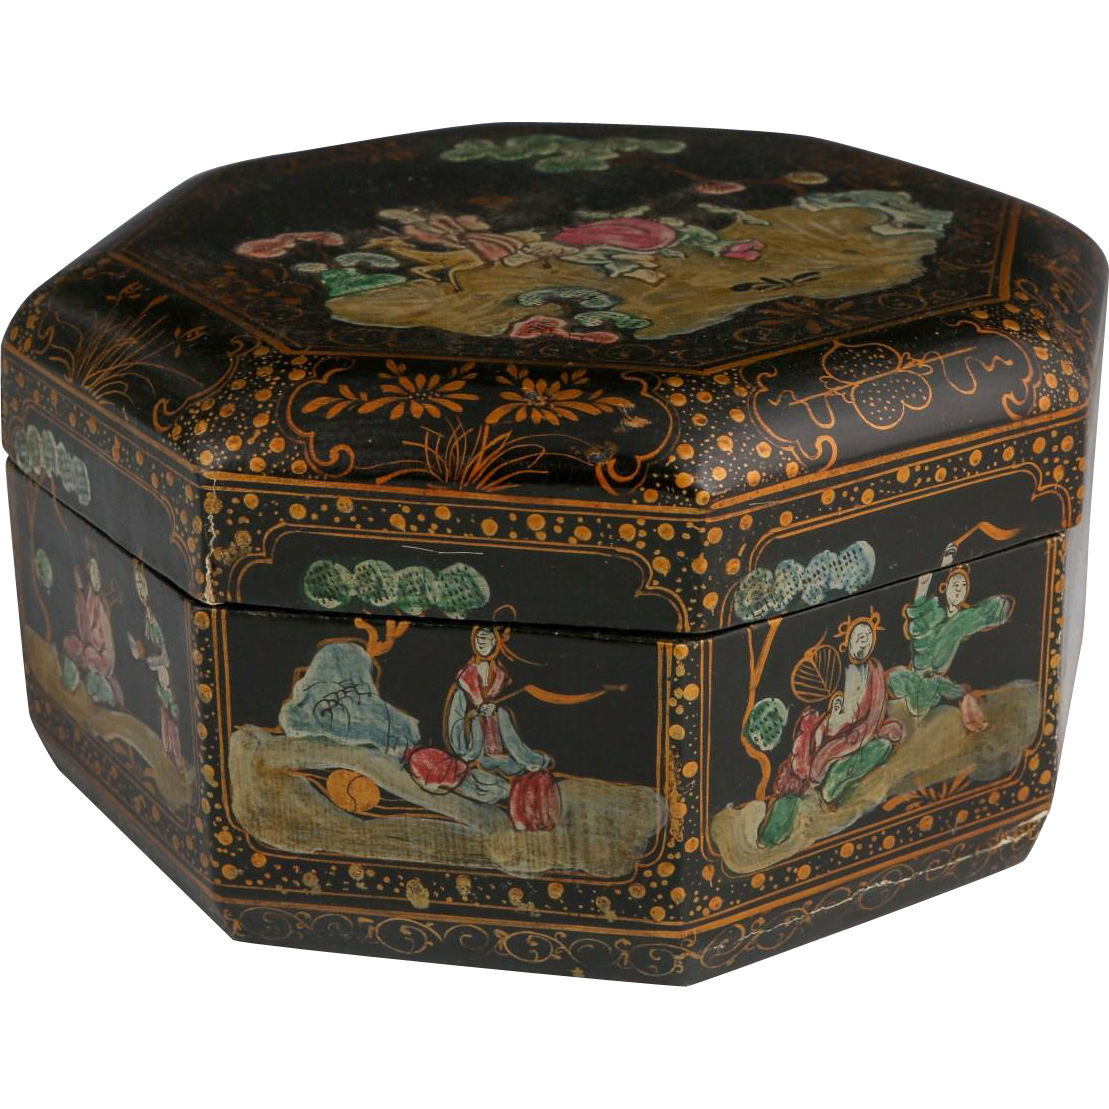 Antique Chinese Lacquered Octagonal Wedding Box, C. 1900